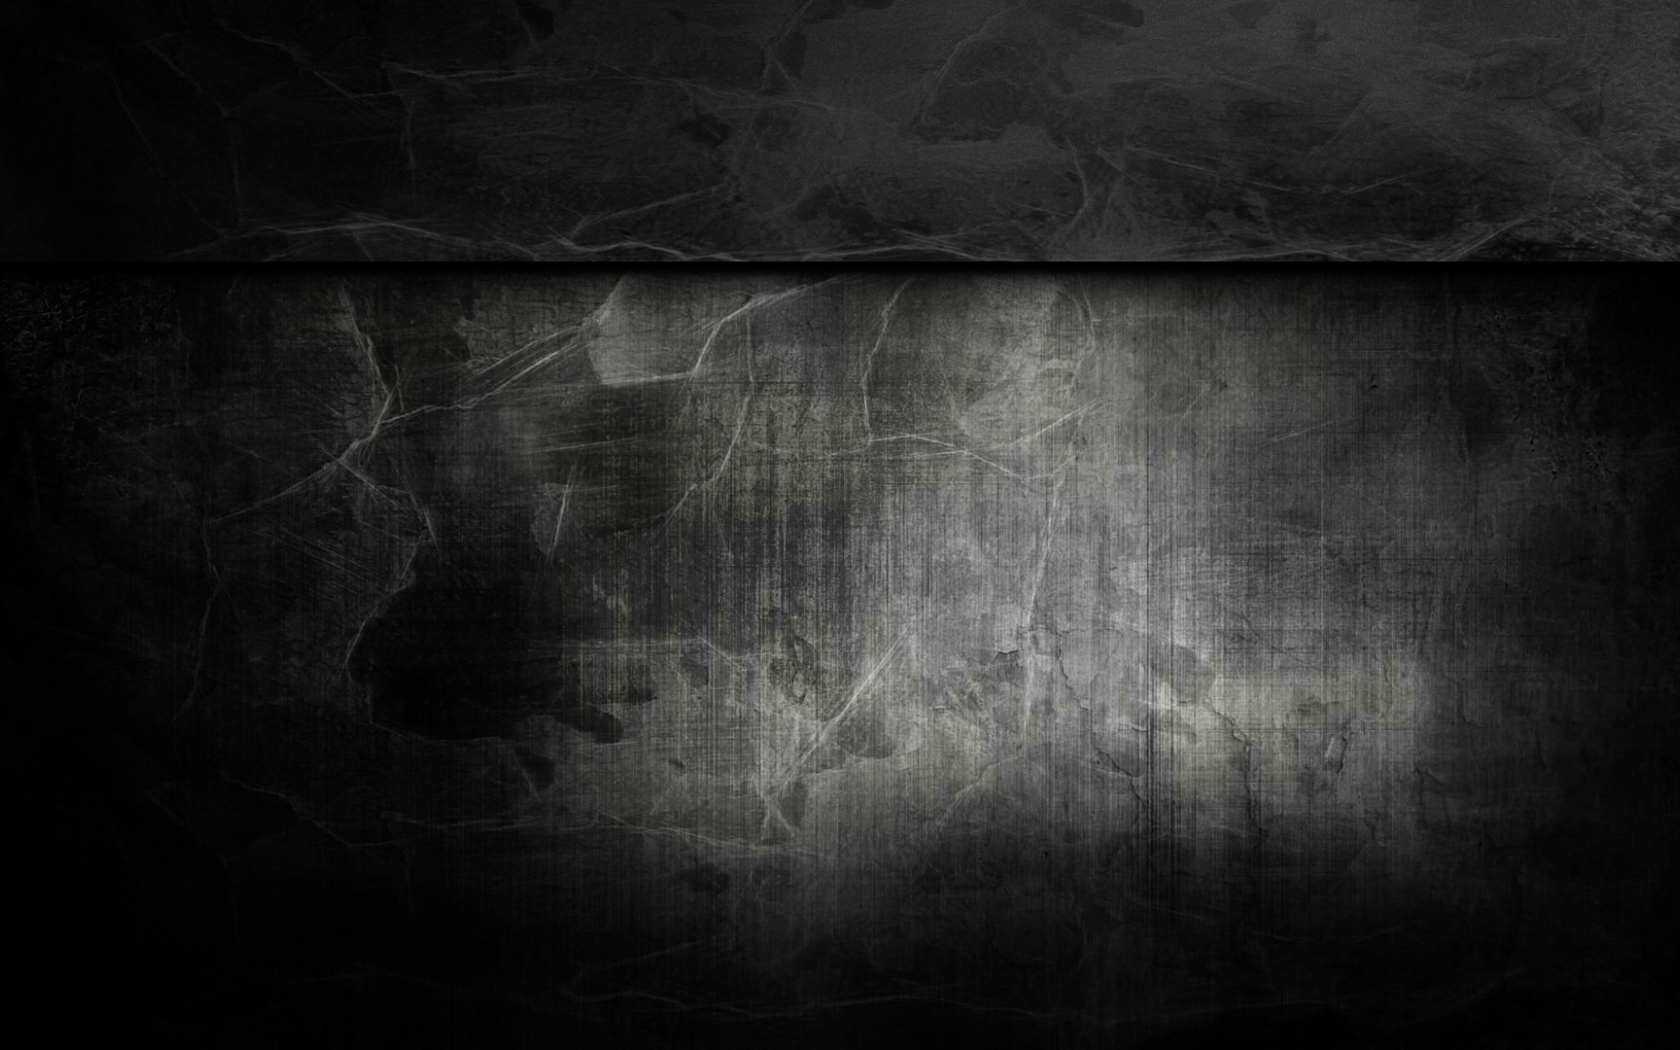 Free Download Surface Templates Textures Backgrounds Black Metal Wallpapers 1920x1080 For Your Desktop Mobile Tablet Explore 74 Black Metal Wallpaper Heavy Metal Wallpapers Metal Wallpaper For Walls Death Metal Wallpaper Hd